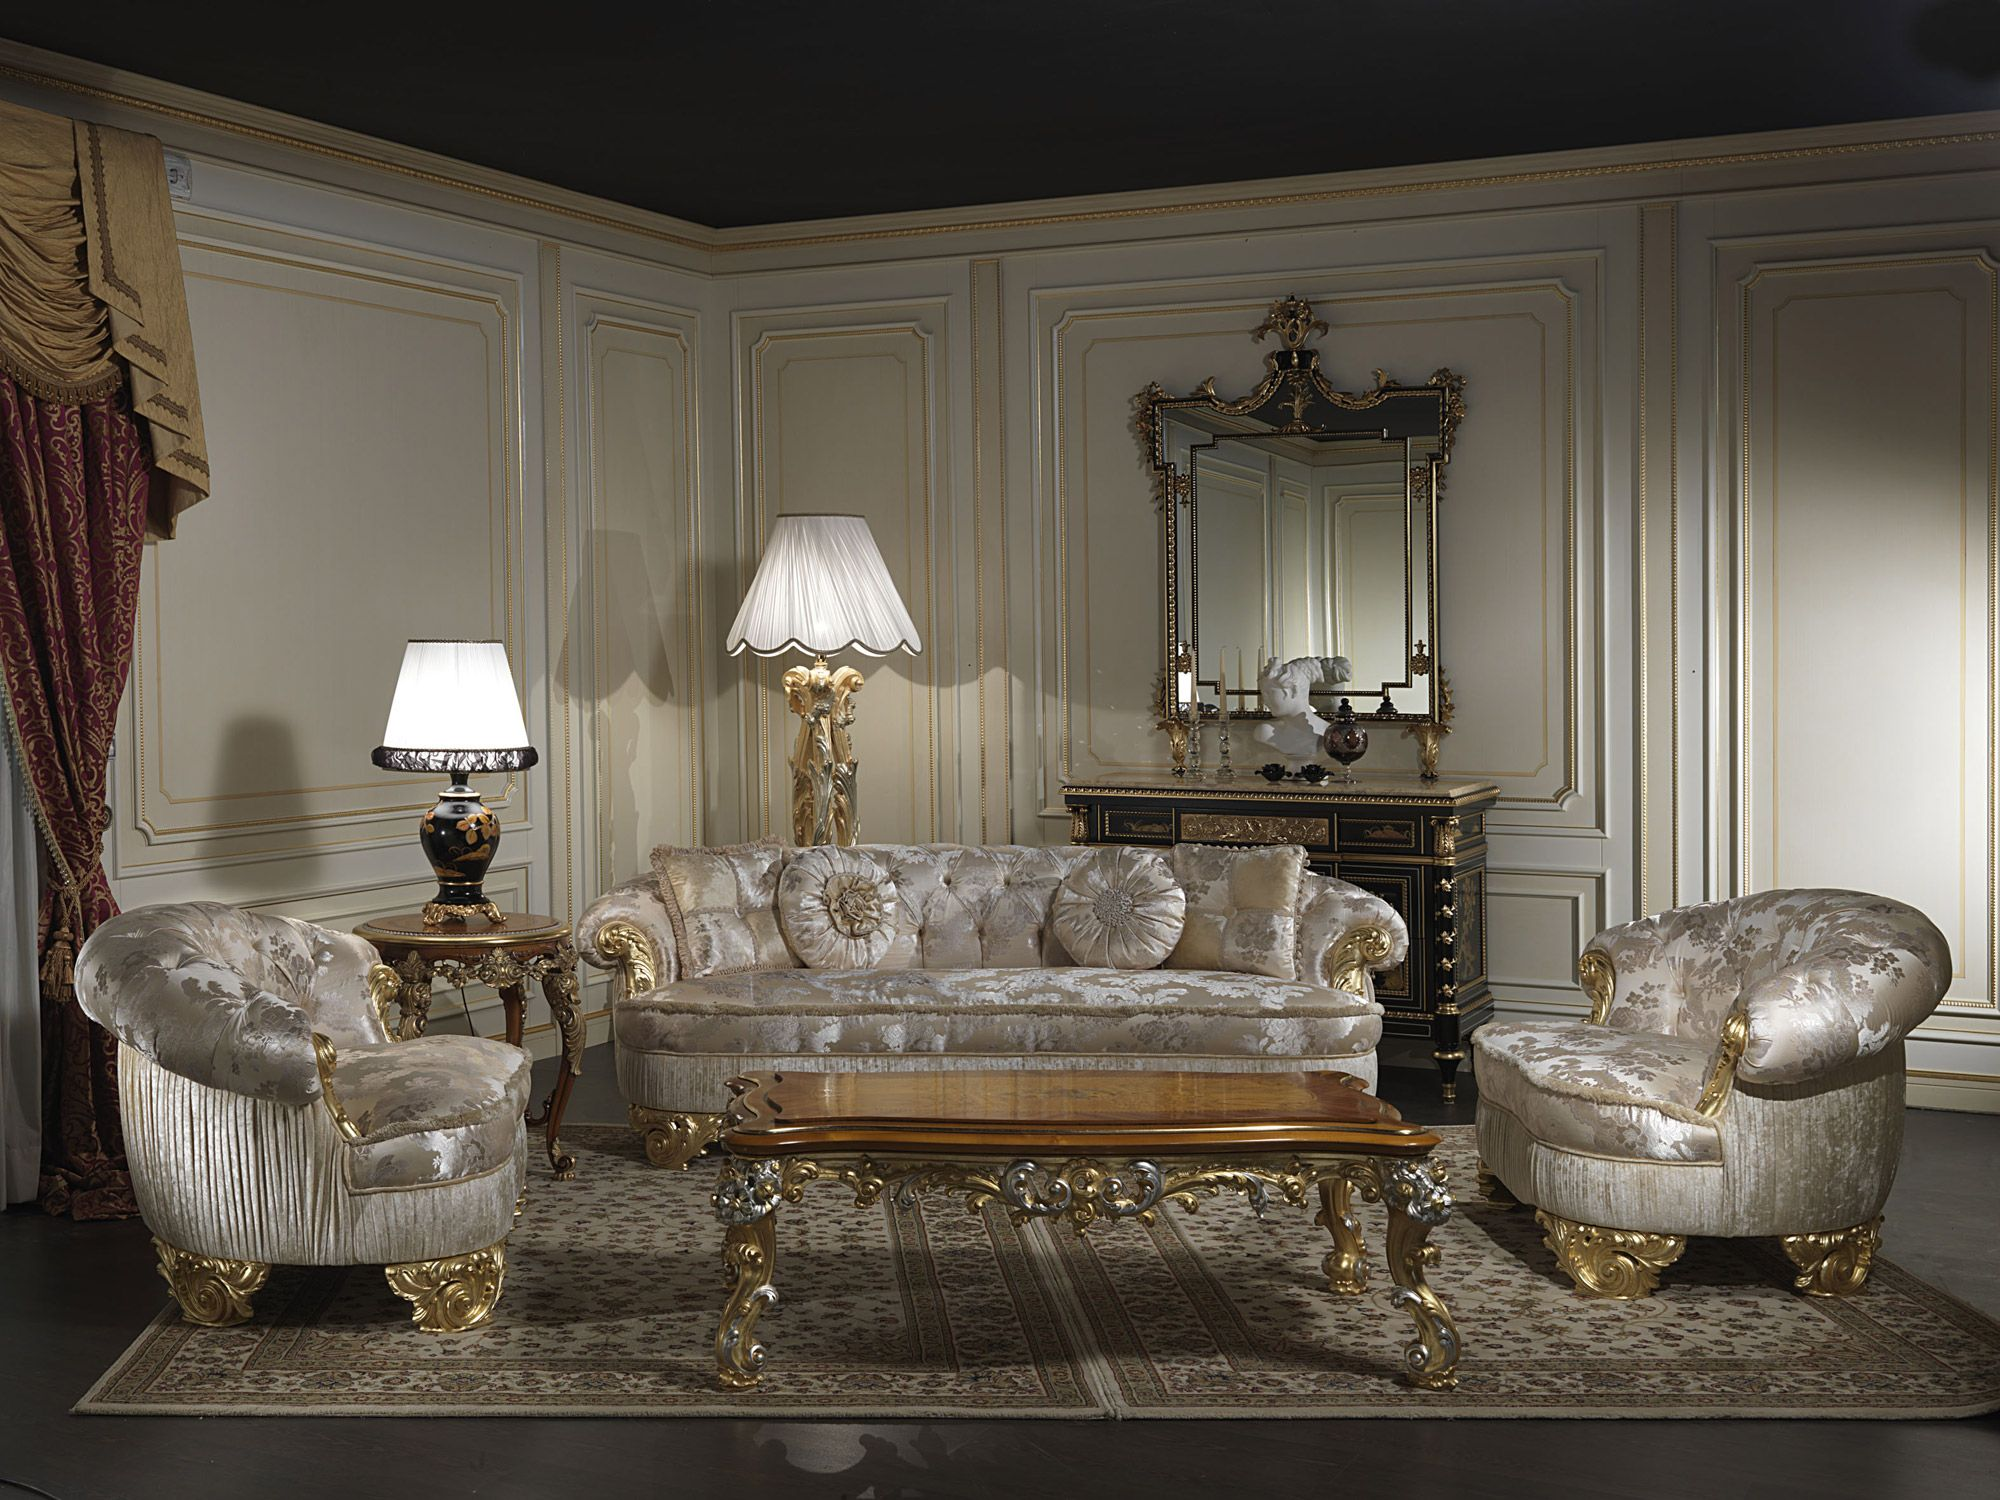 Classic Upholstered Sofas Of The Luxury Craft Collection Paris 100% Made Inu2026